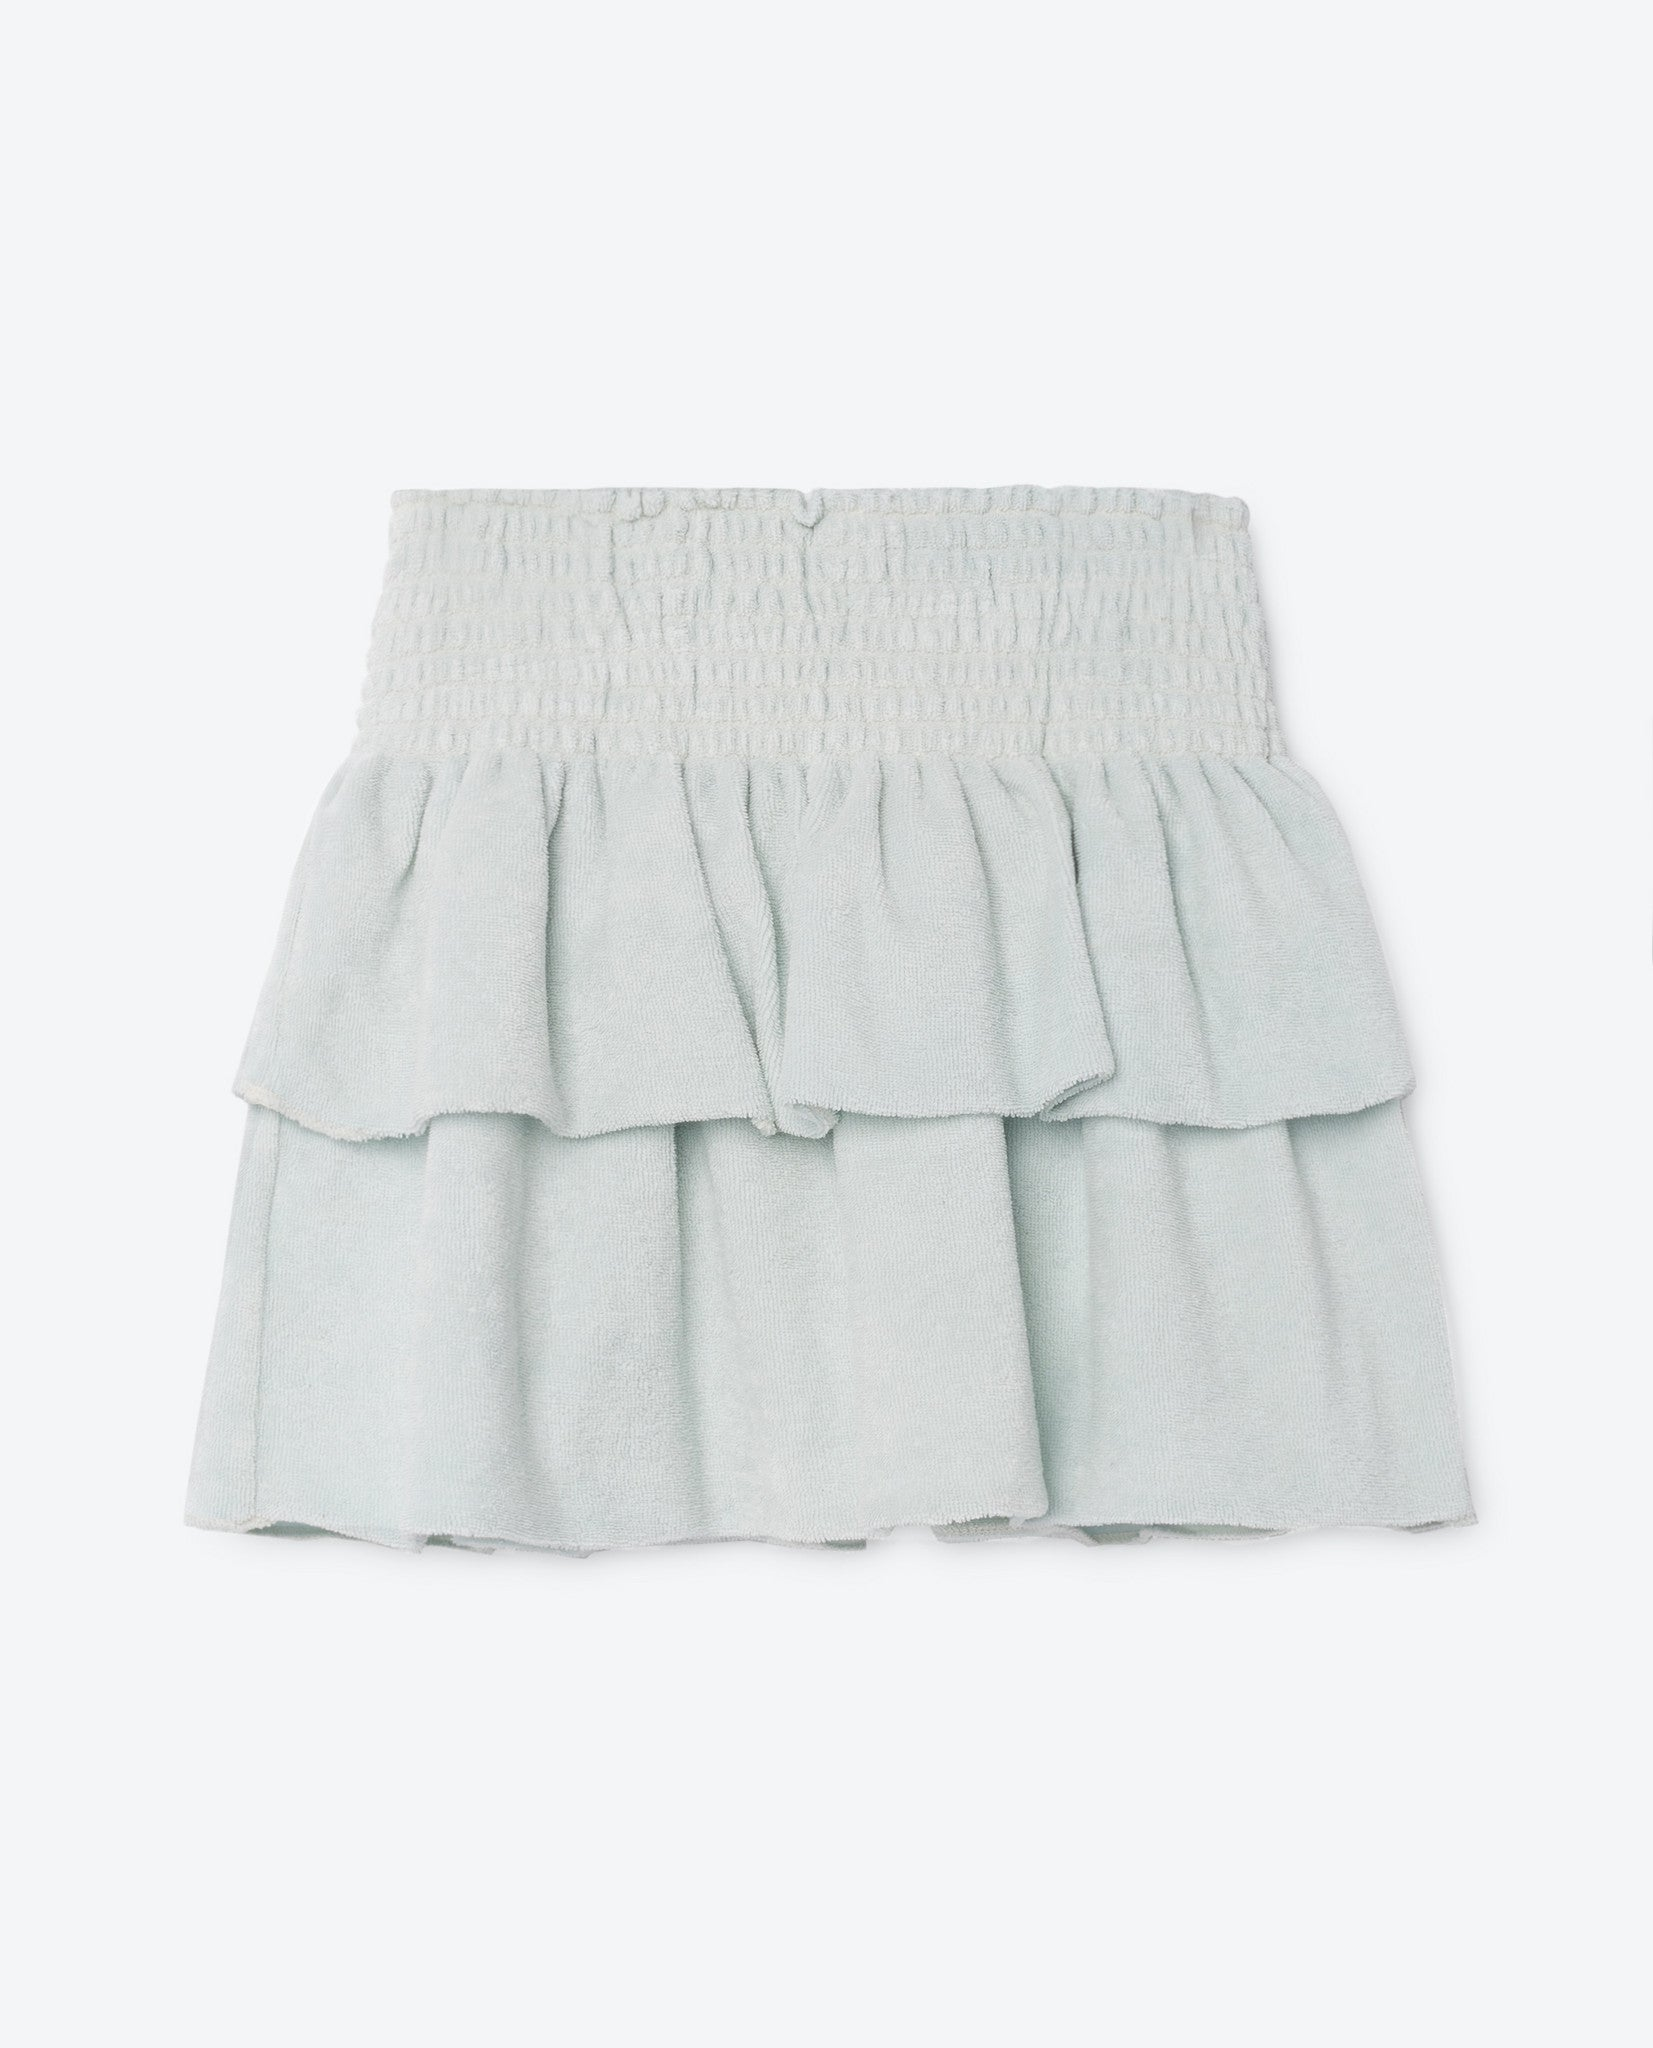 The Animals Observatory Light Blue Chez Luis Kiwi Skirt